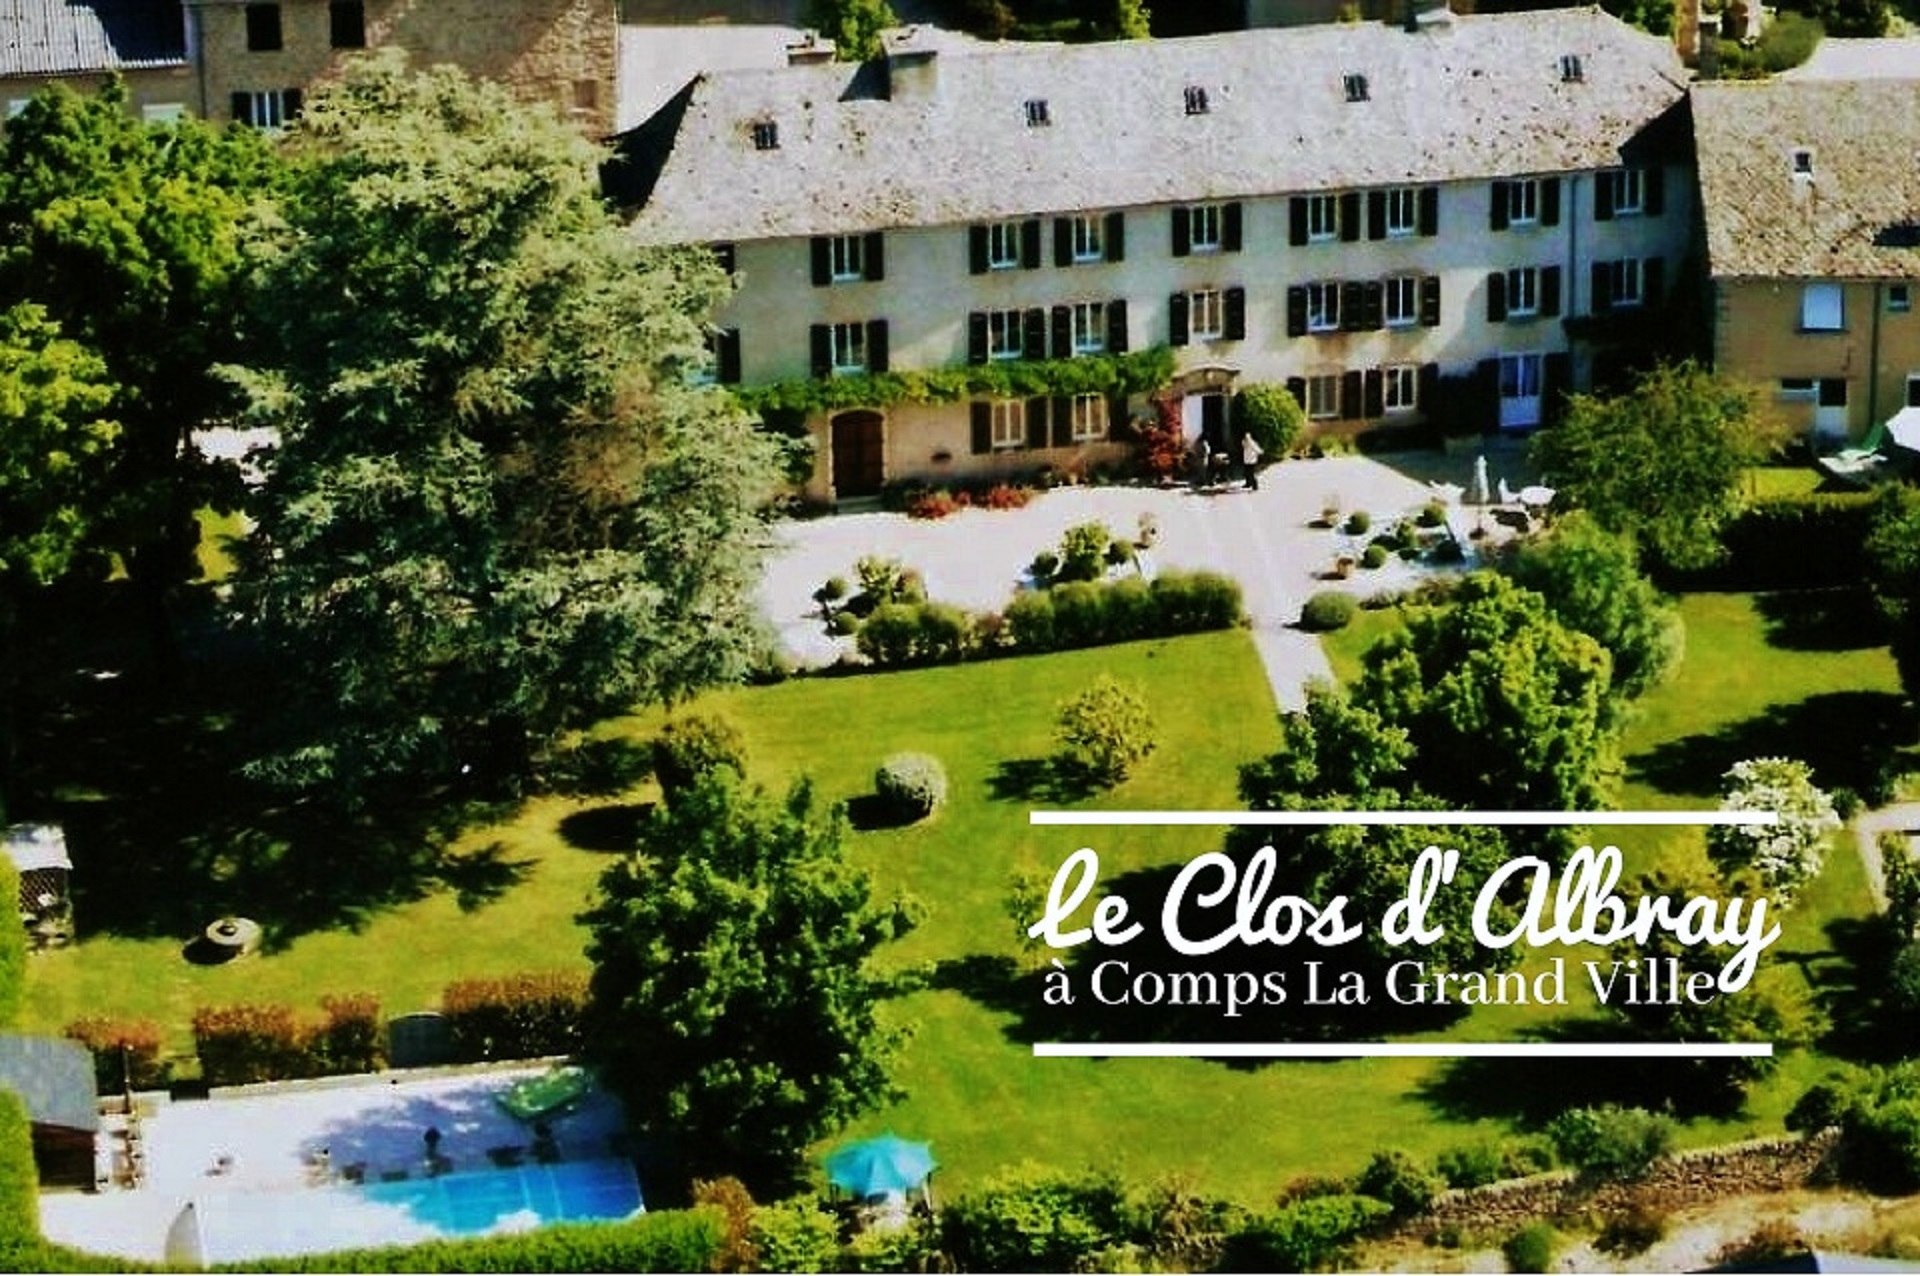 Le Clos d Albray - Aveyron - Dreams World - Blog voyage